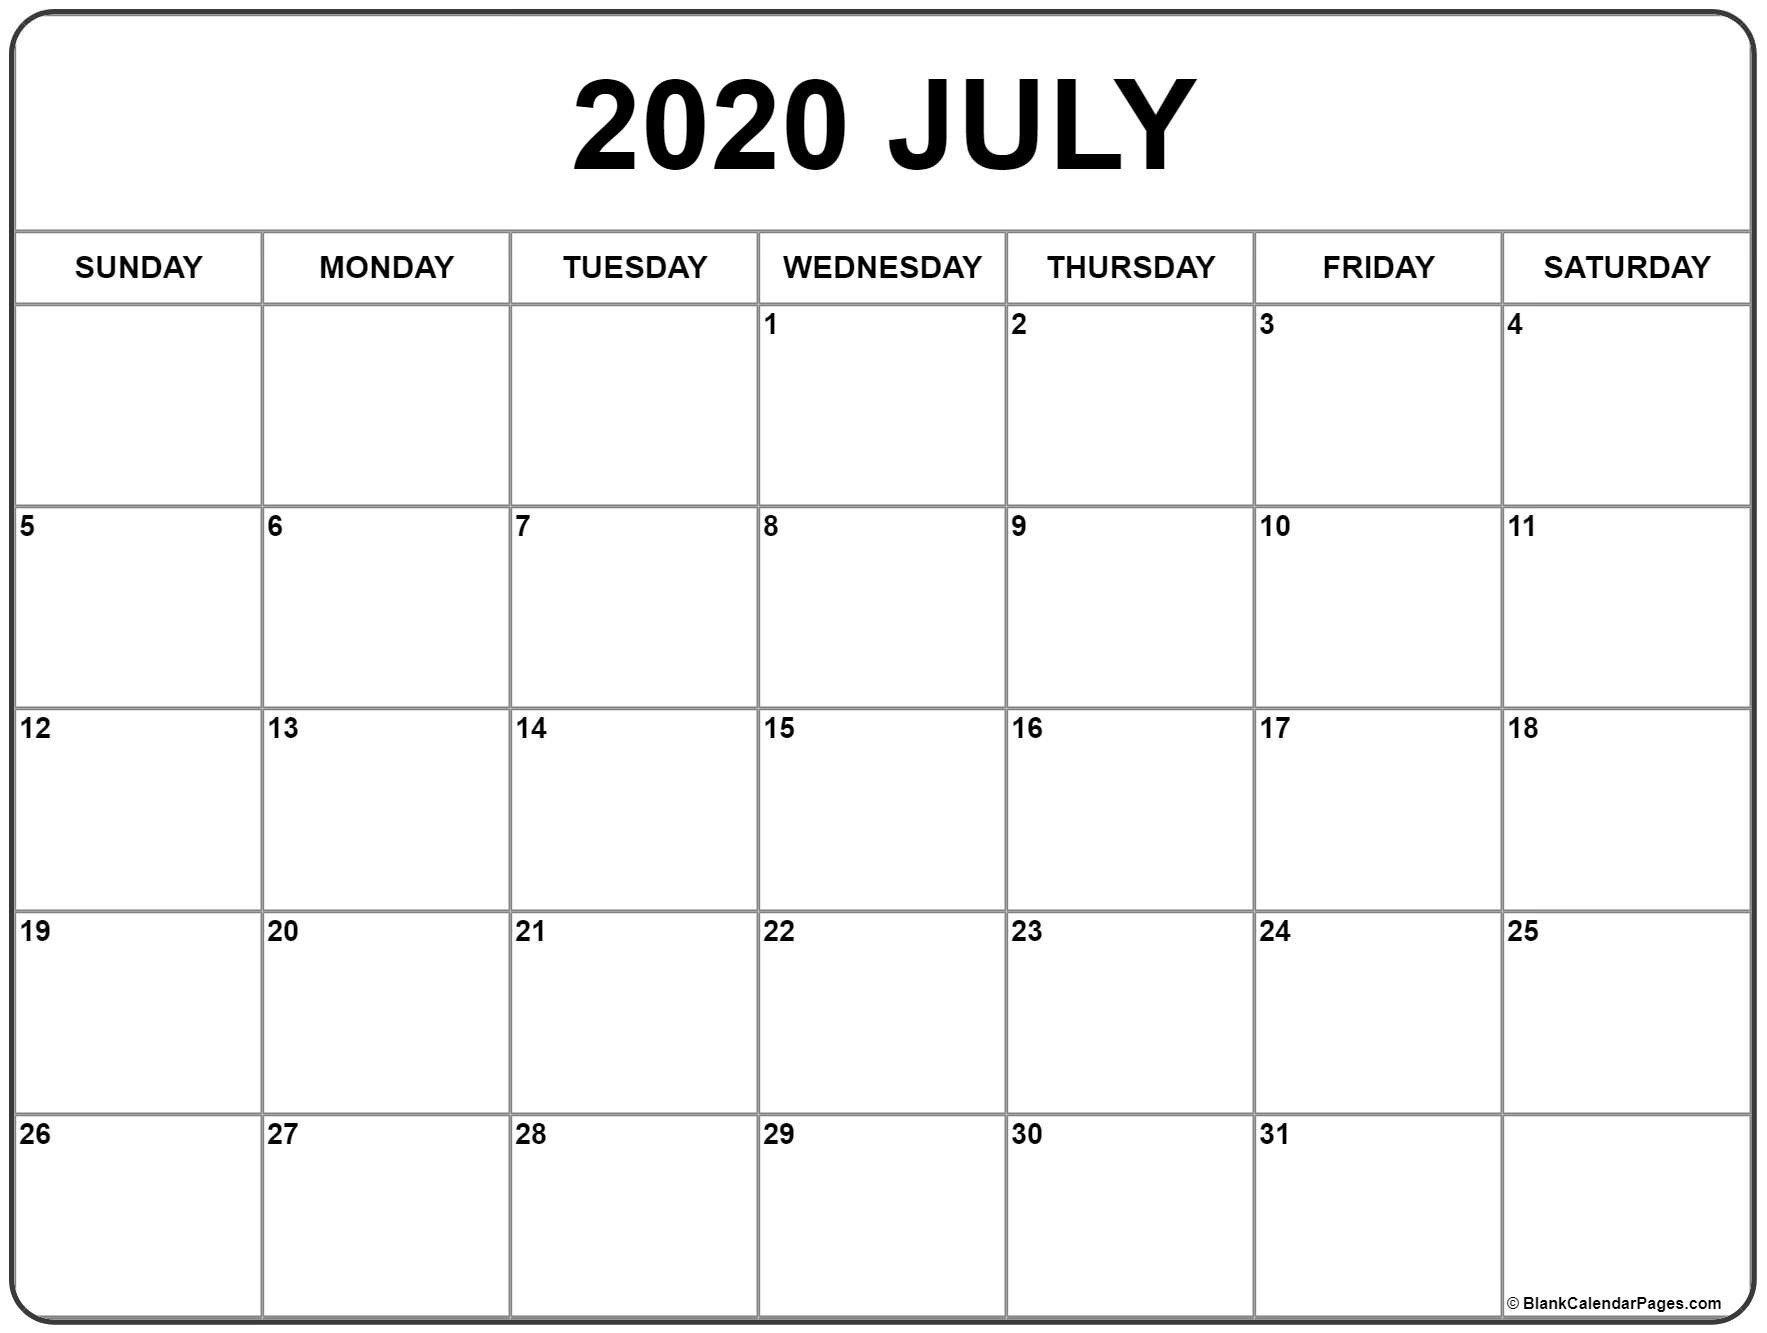 July 2020 Calendar | Free Printable Monthly Calendars-Monthly Calendars 2020 Printable Free 2-Pages Blank